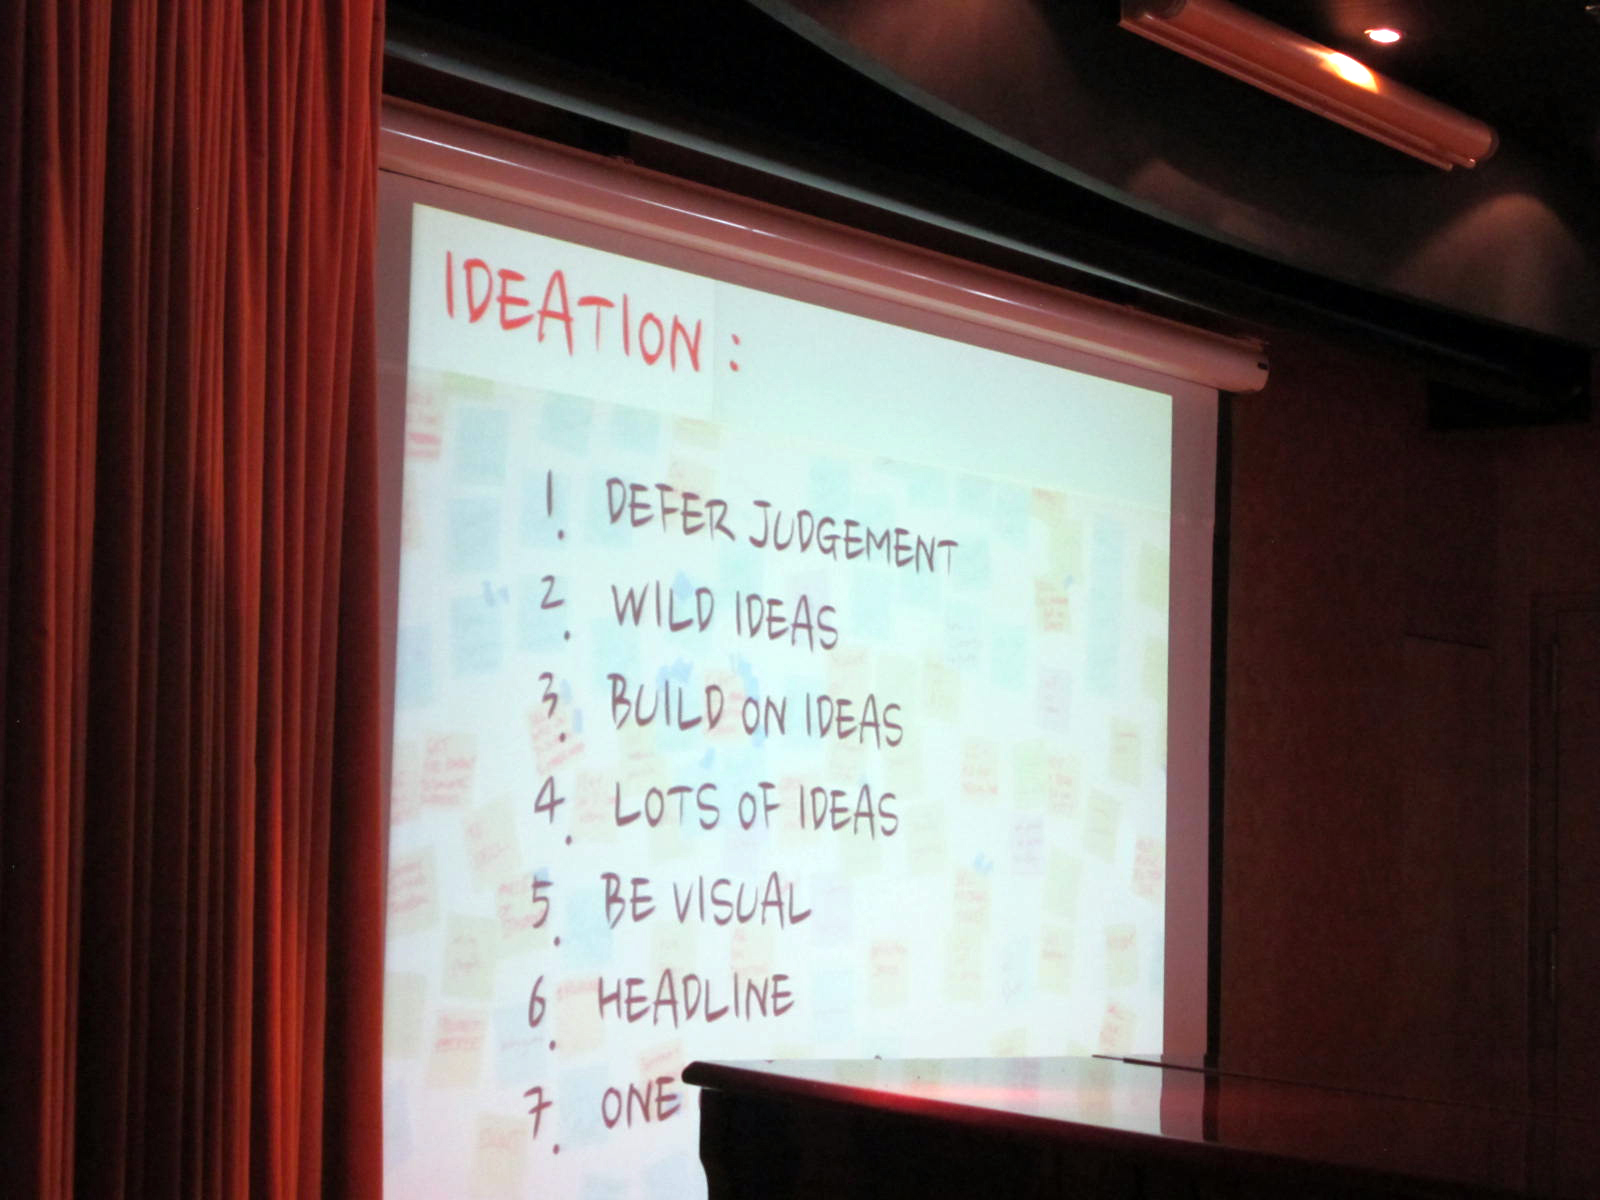 the rules of brainstorming